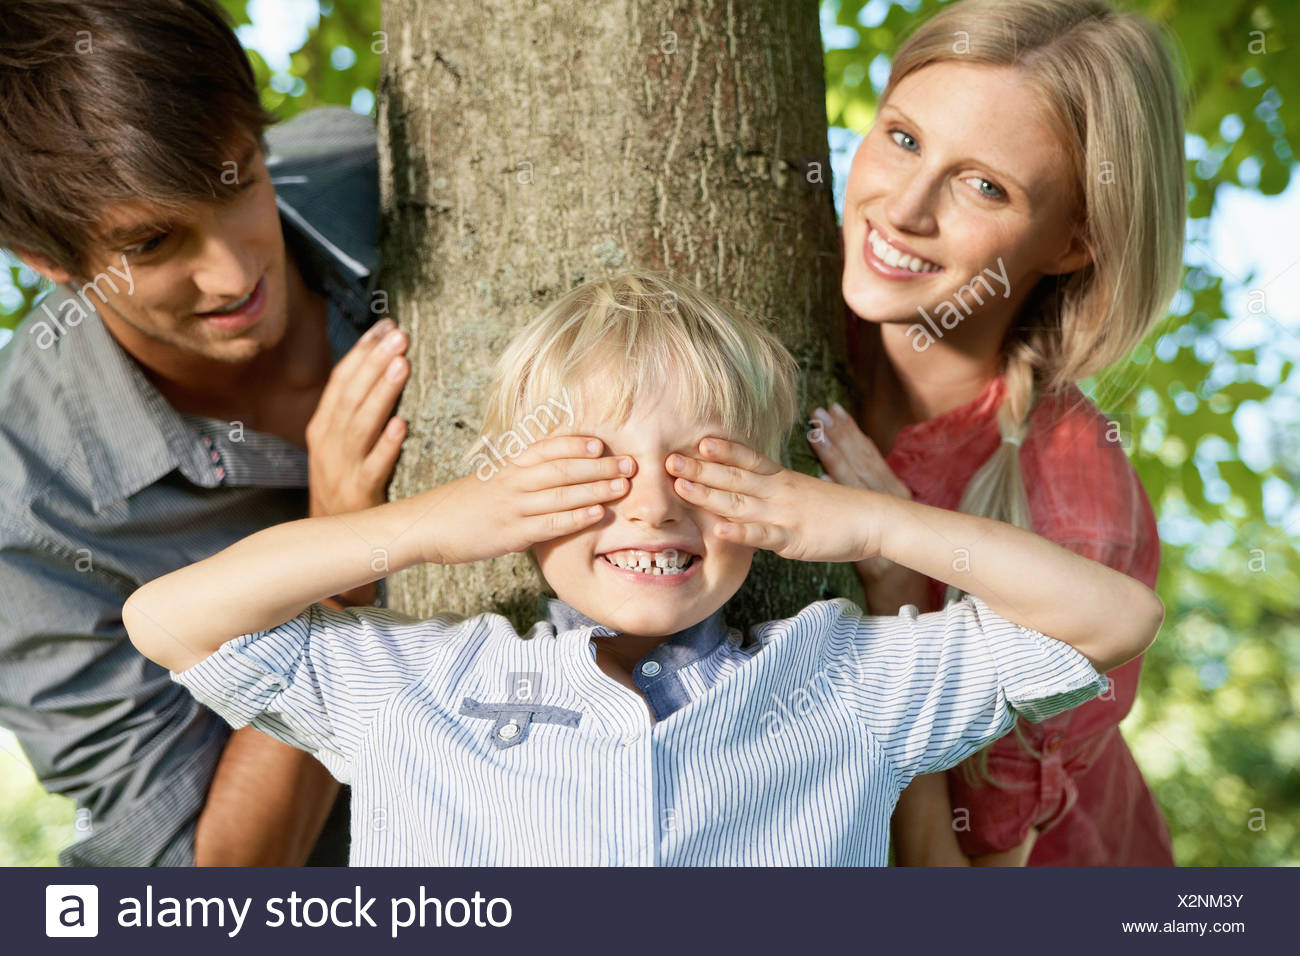 Germany, Cologne, Boy playing hide and seek with parents Stock Photo